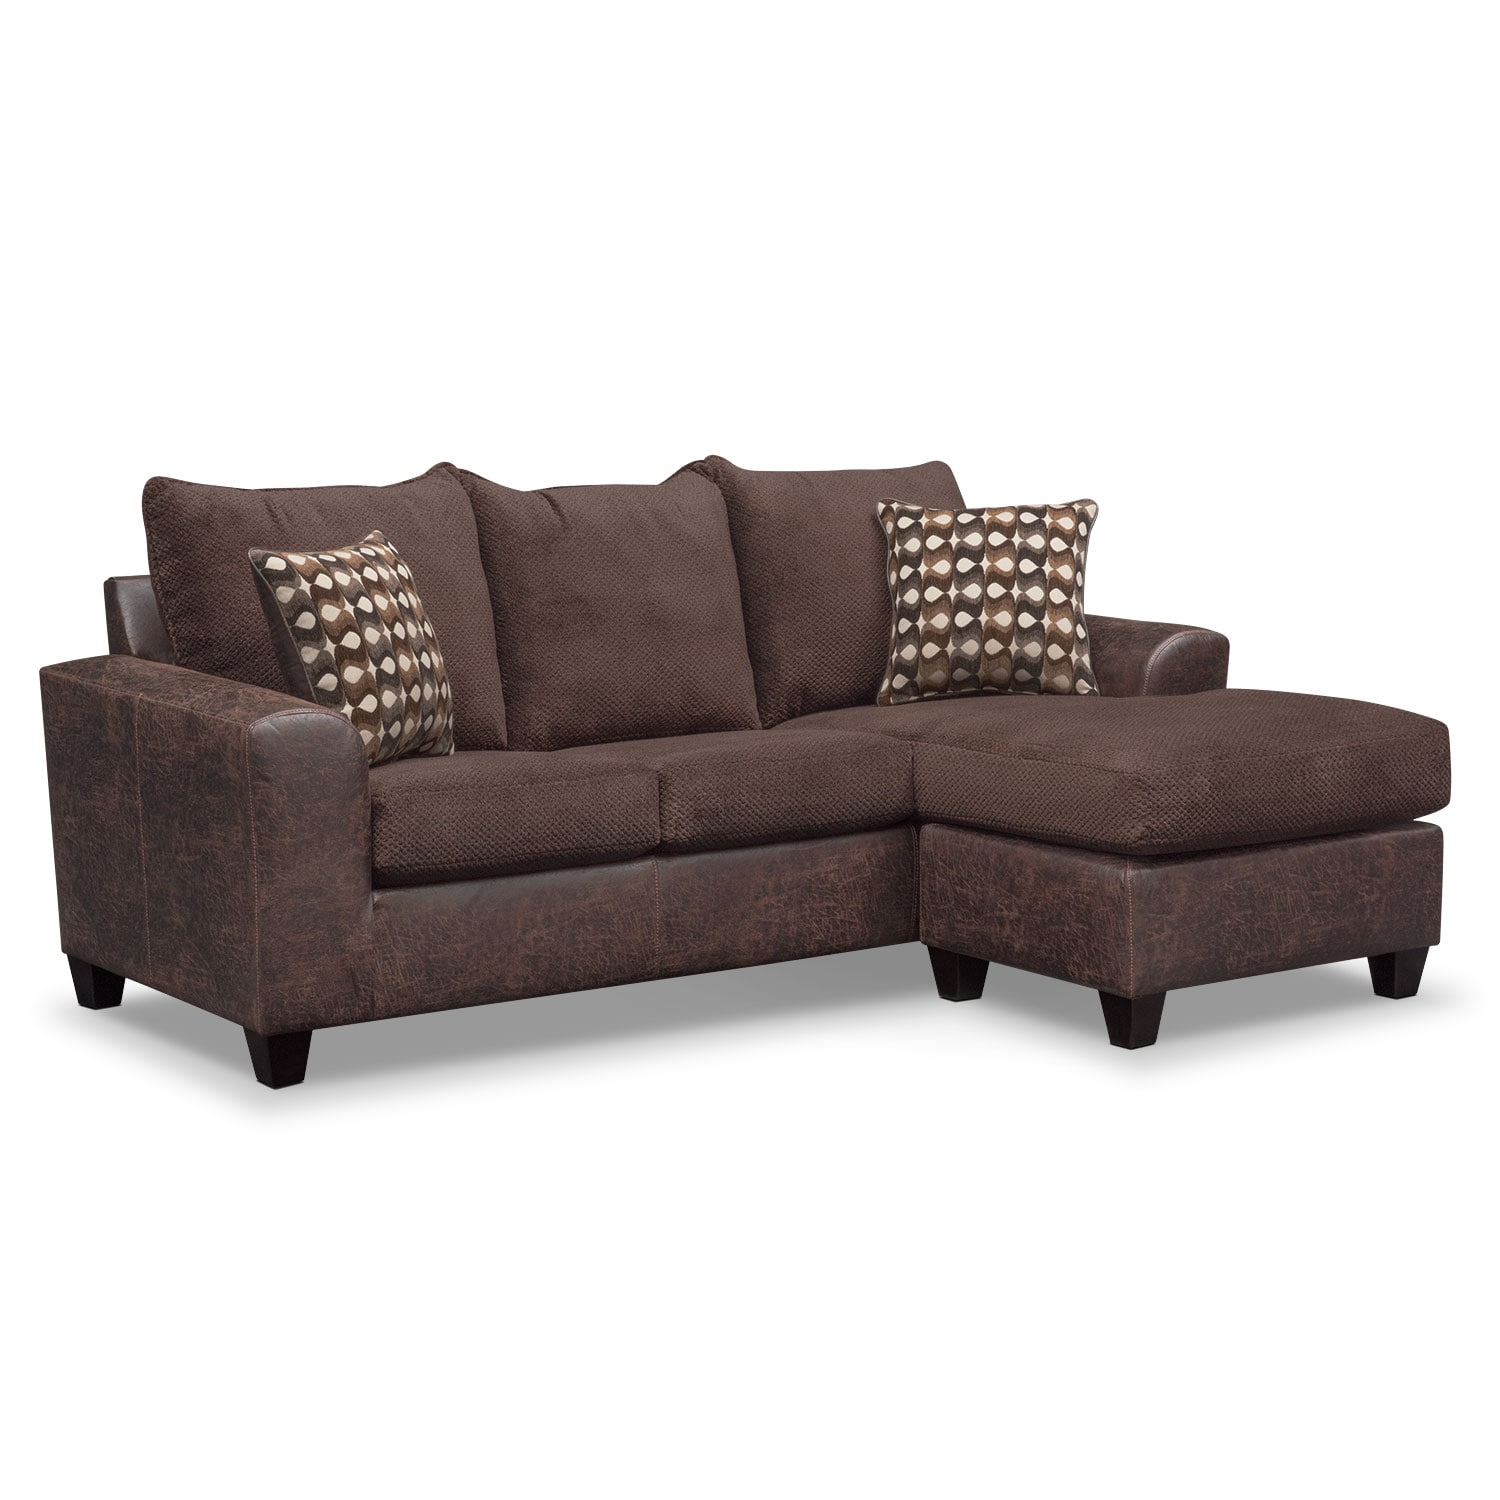 swivel chair sofa set home theater chairs brando with chaise and chocolate